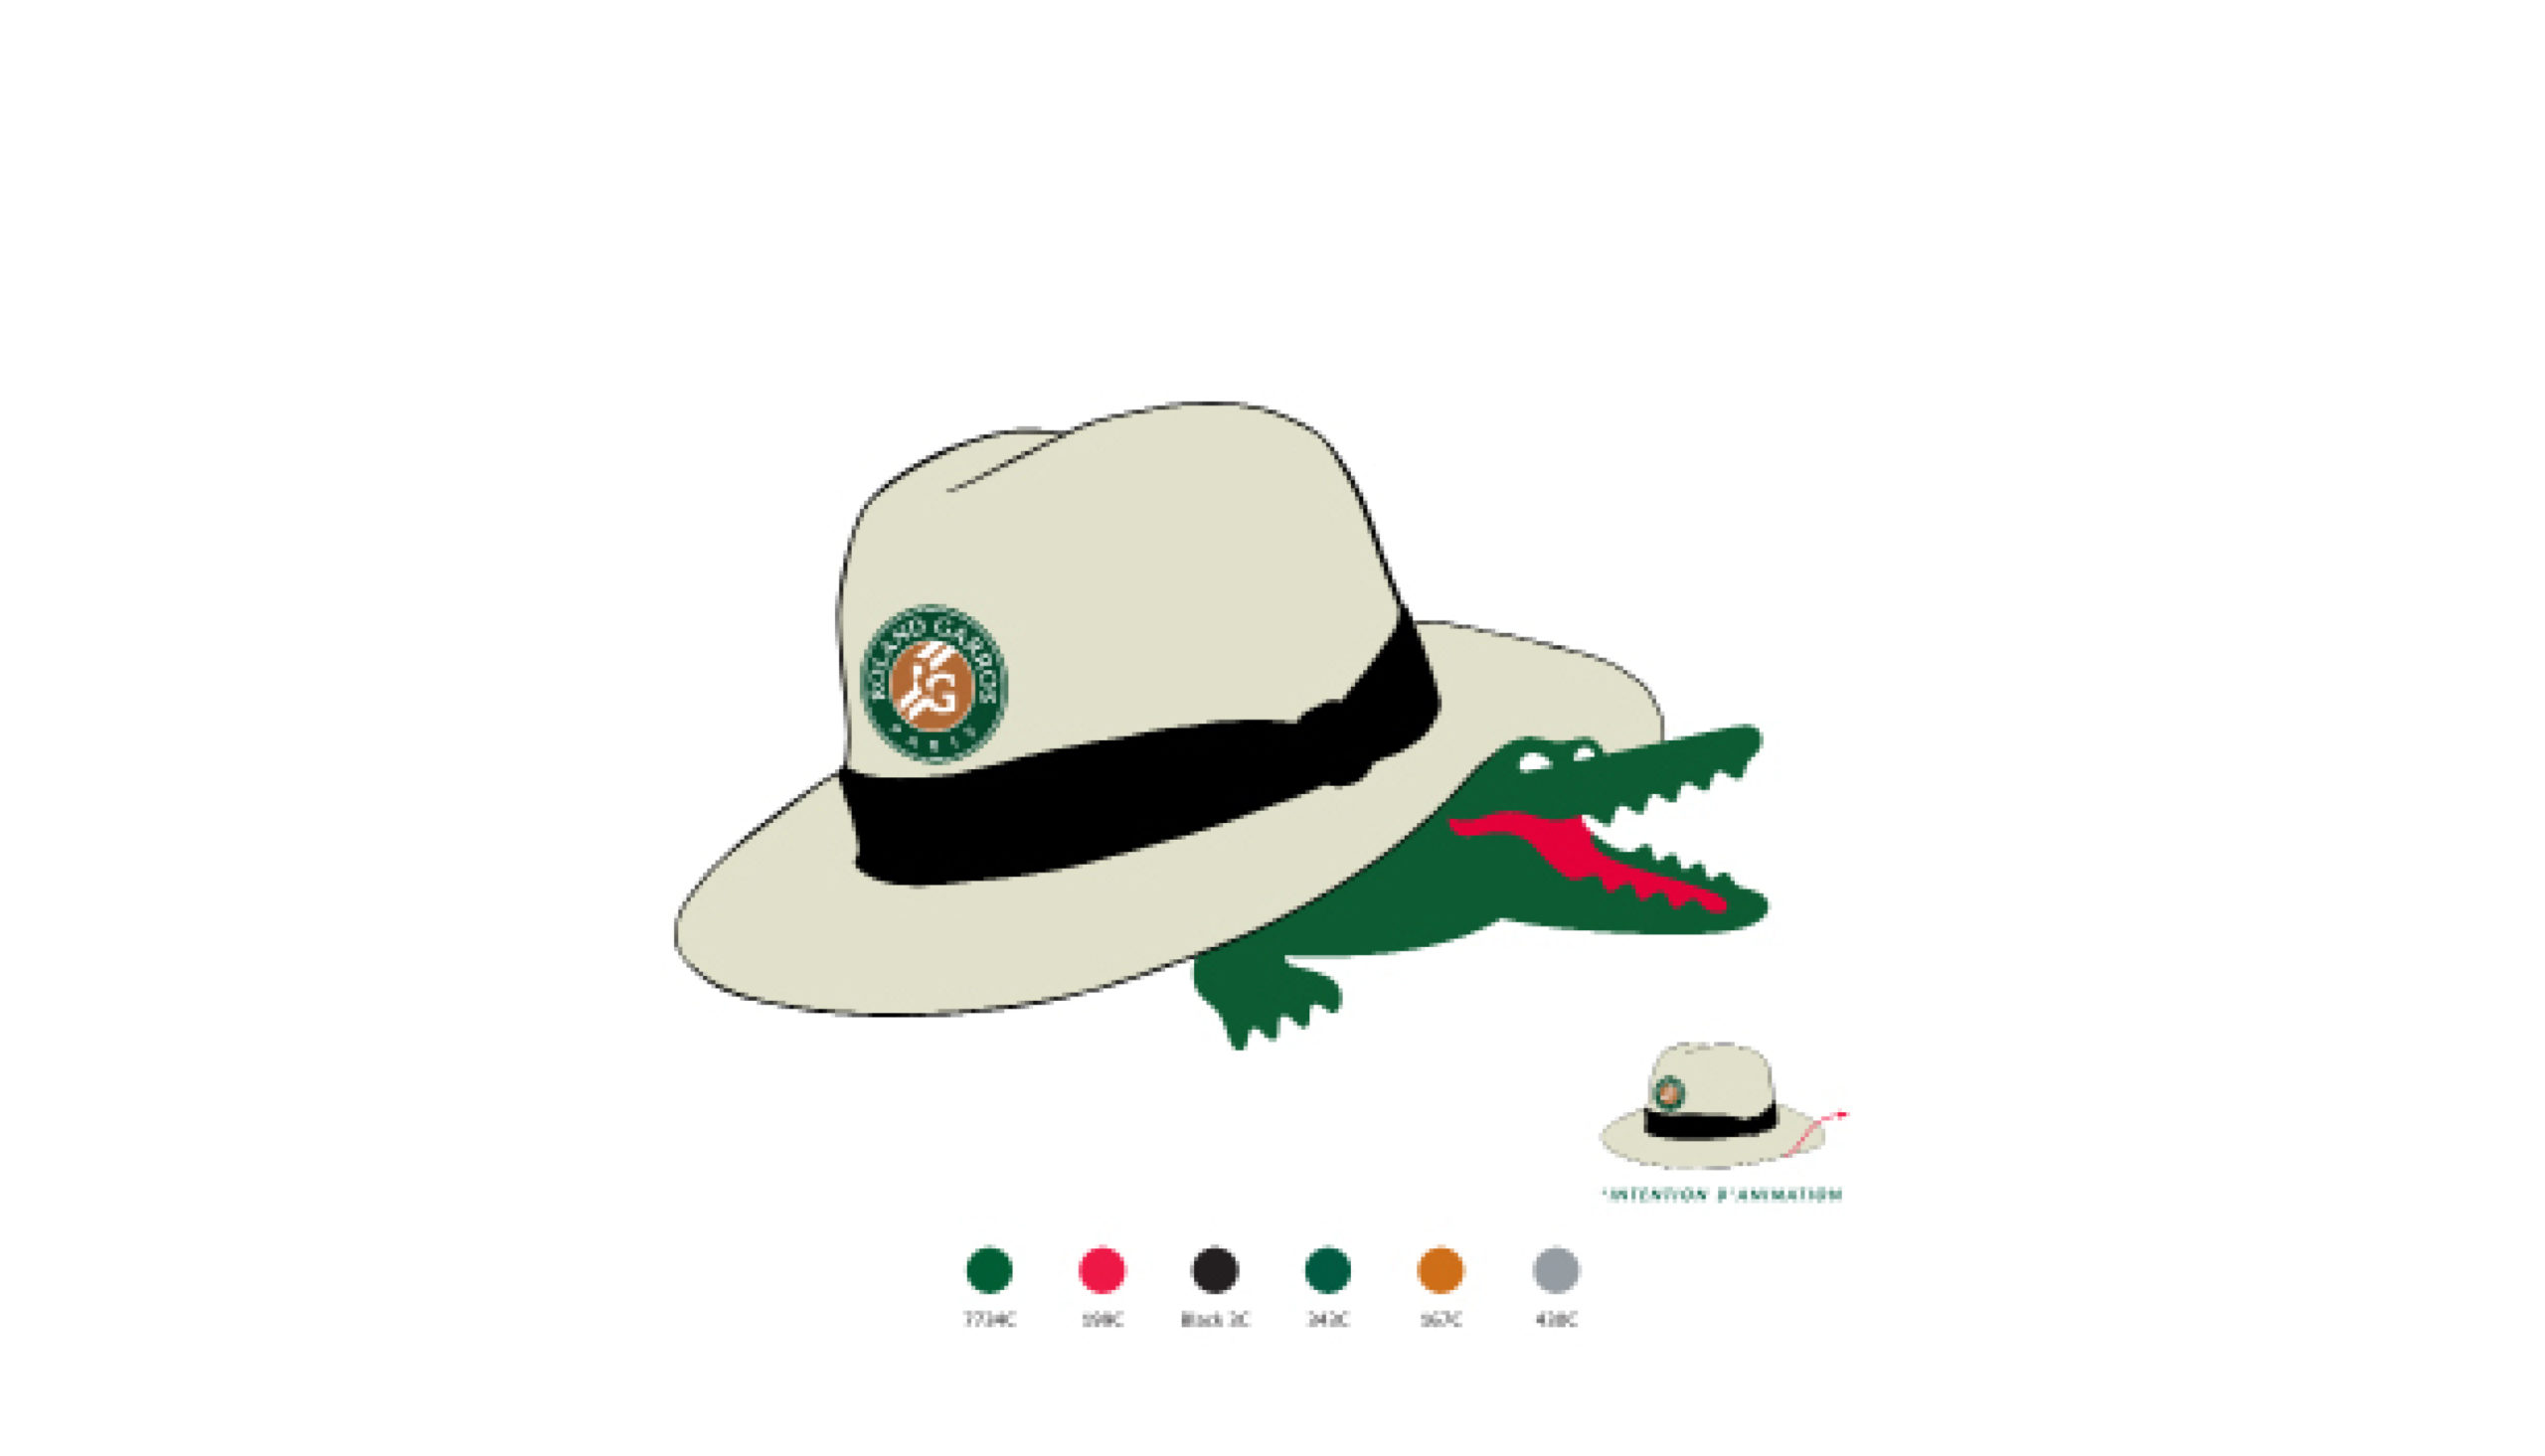 LACOSTE_STICKERS_HOBBYNOTE_R_0410